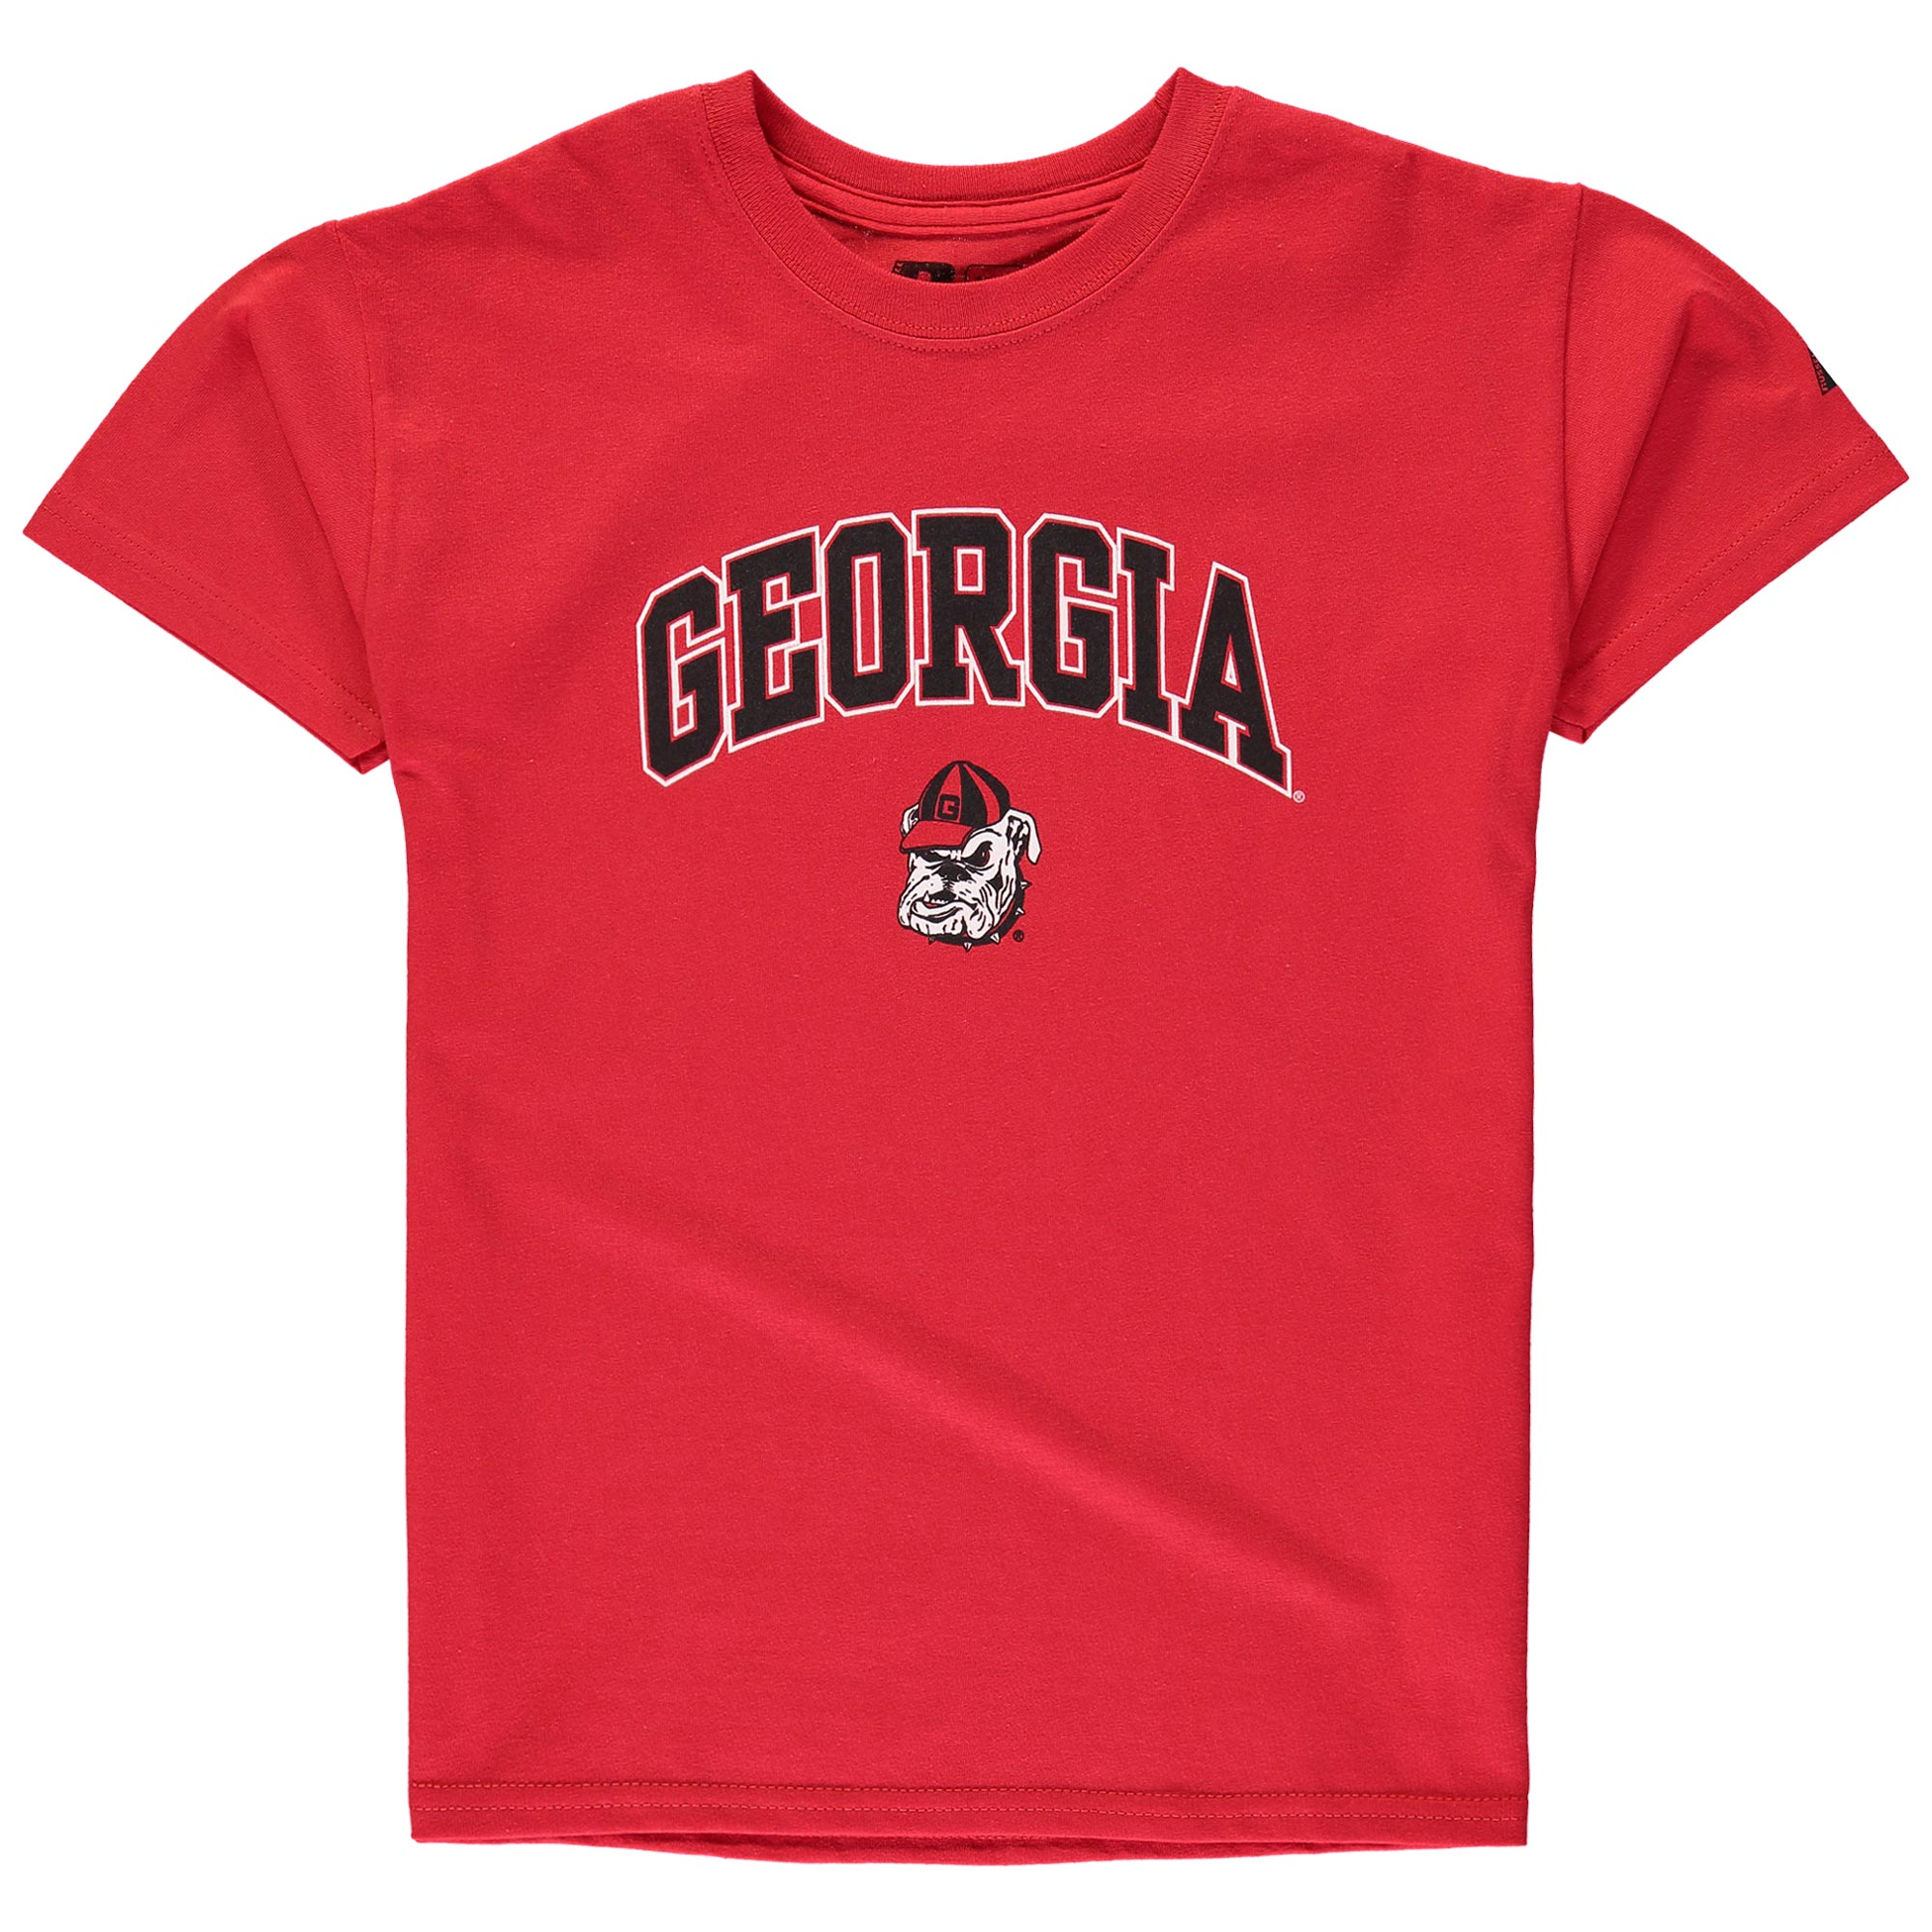 Youth Russell Red Georgia Bulldogs Team 1 Crew Neck T-Shirt